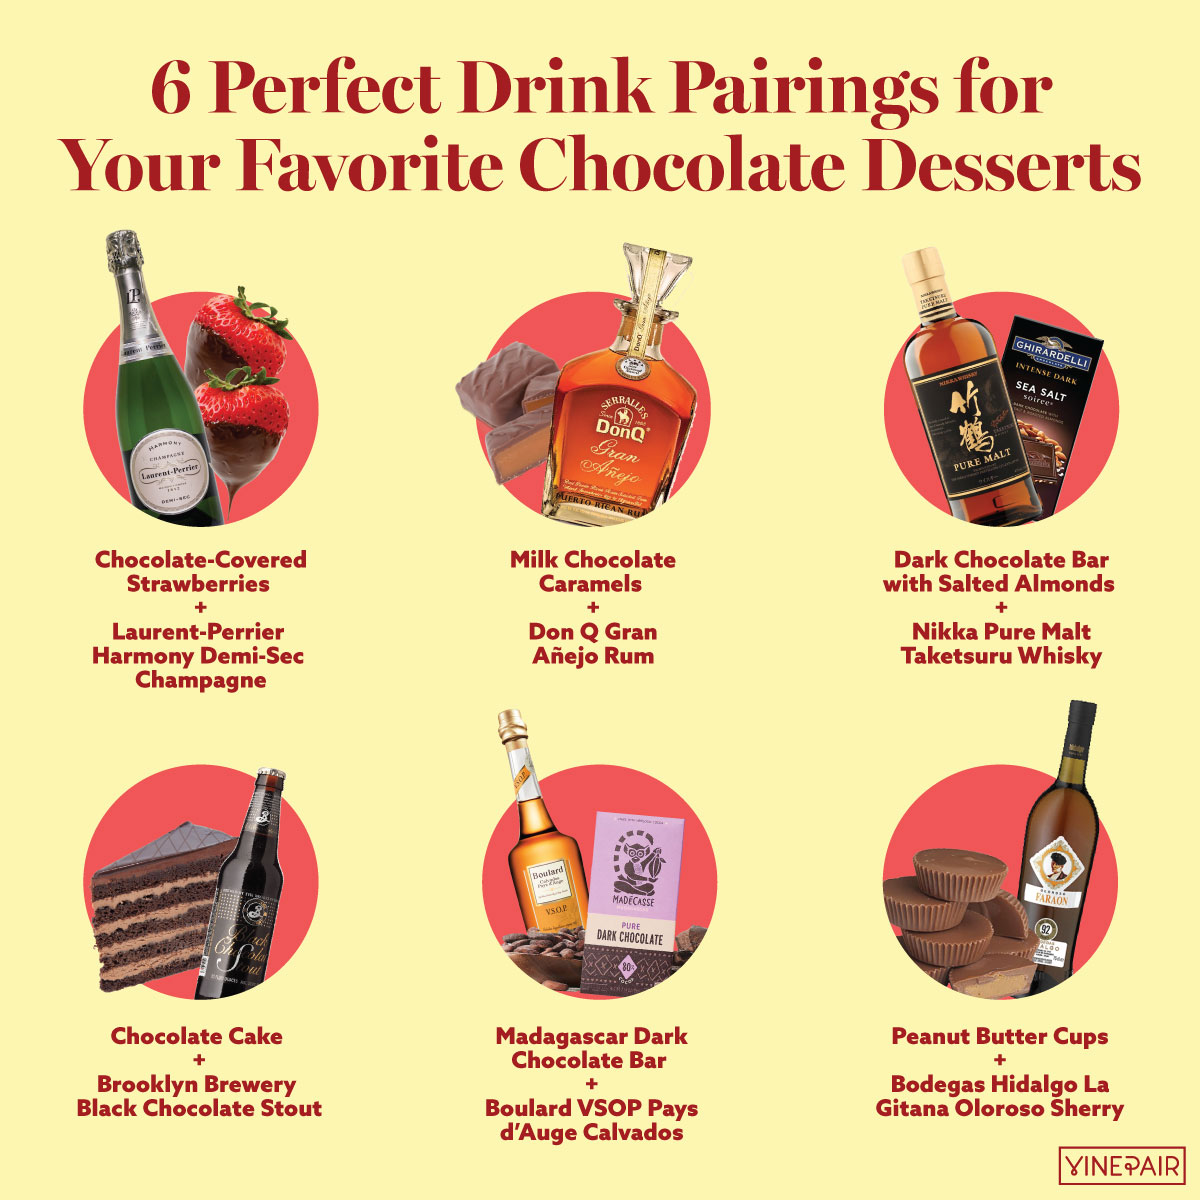 6 Perfect Drink Pairings for Chocolate